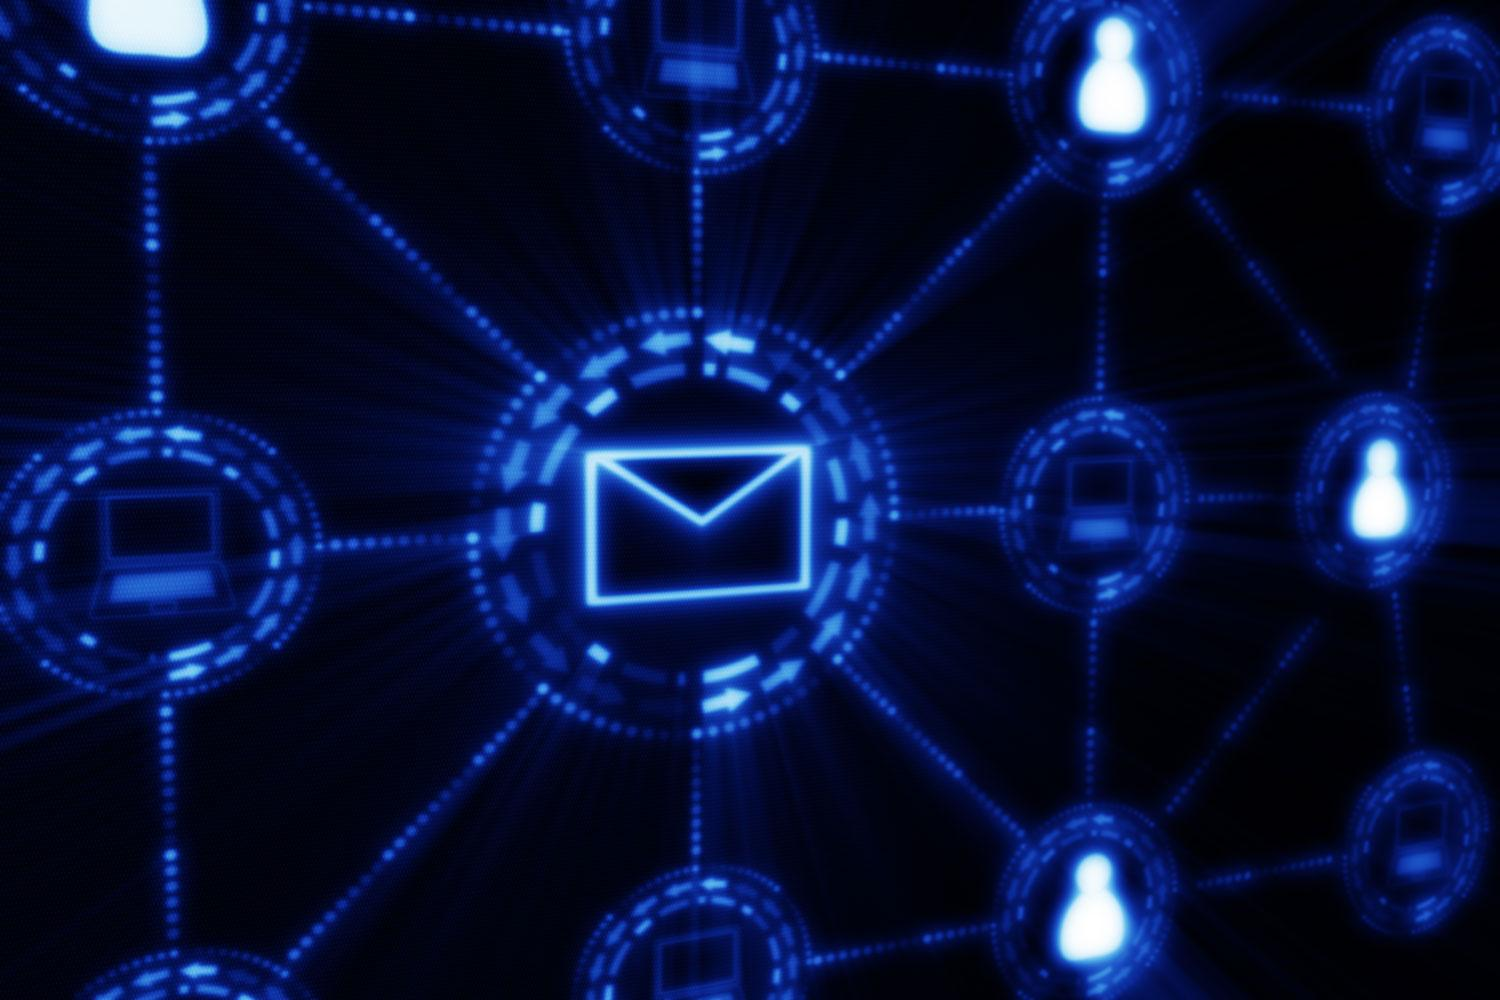 Email is not secure; here's why | Digital Trends